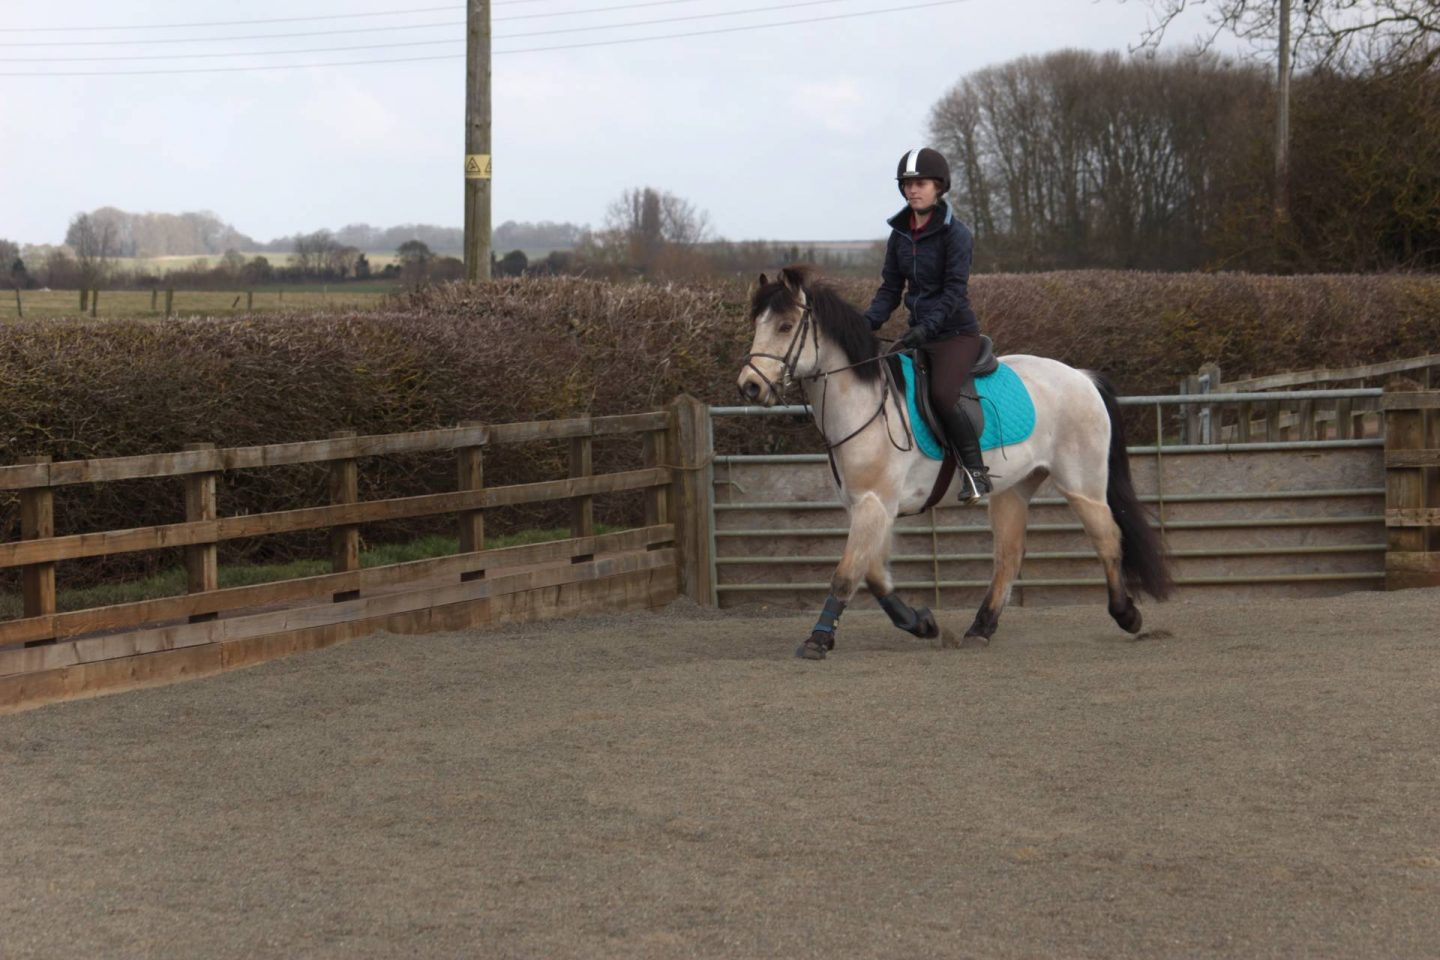 How I Keep Fit by Horse Riding with Decathlon